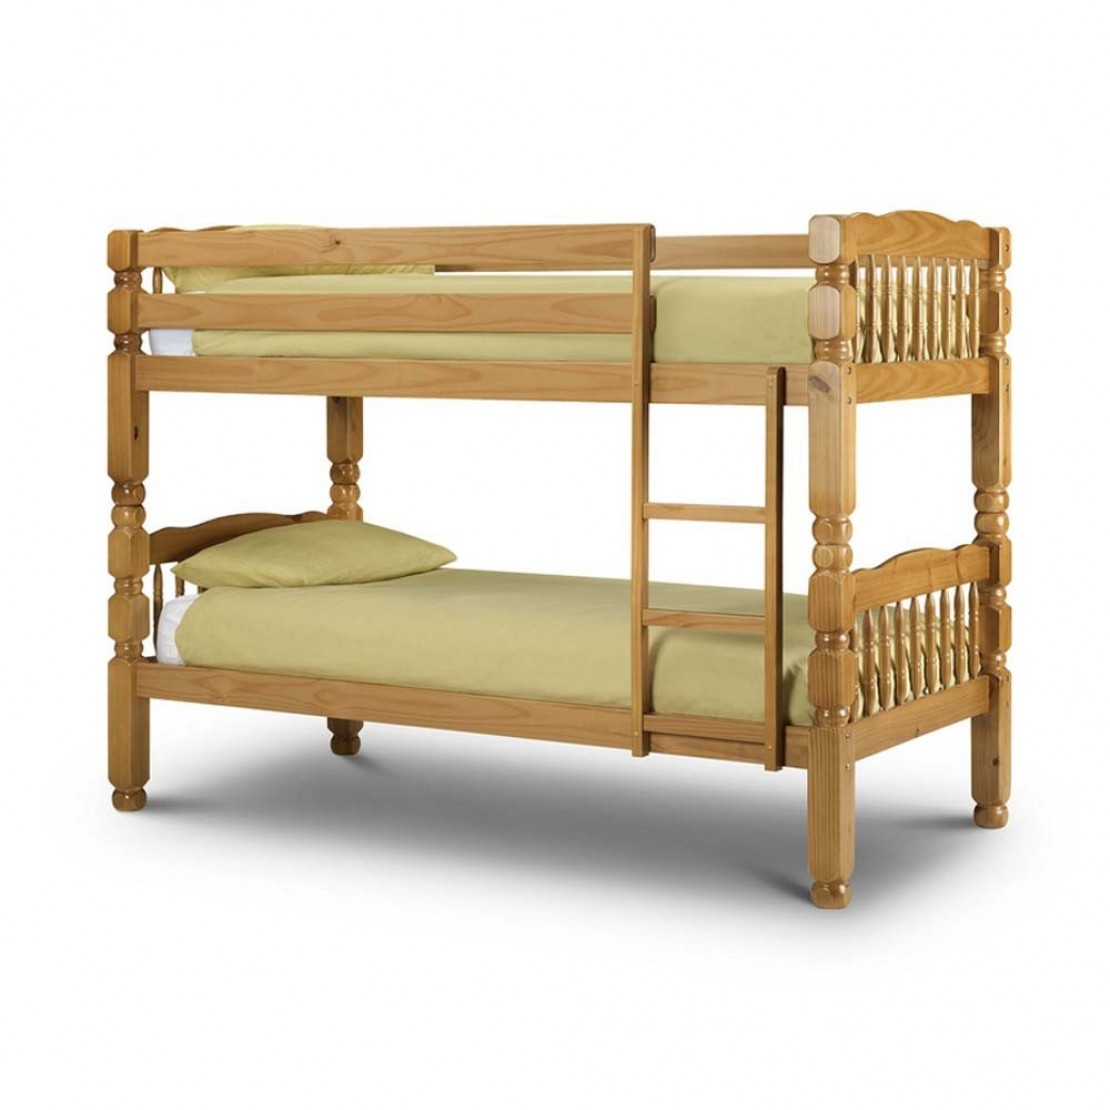 /_images/product-photos/julian-bowen-chunky-bunk-a.jpg